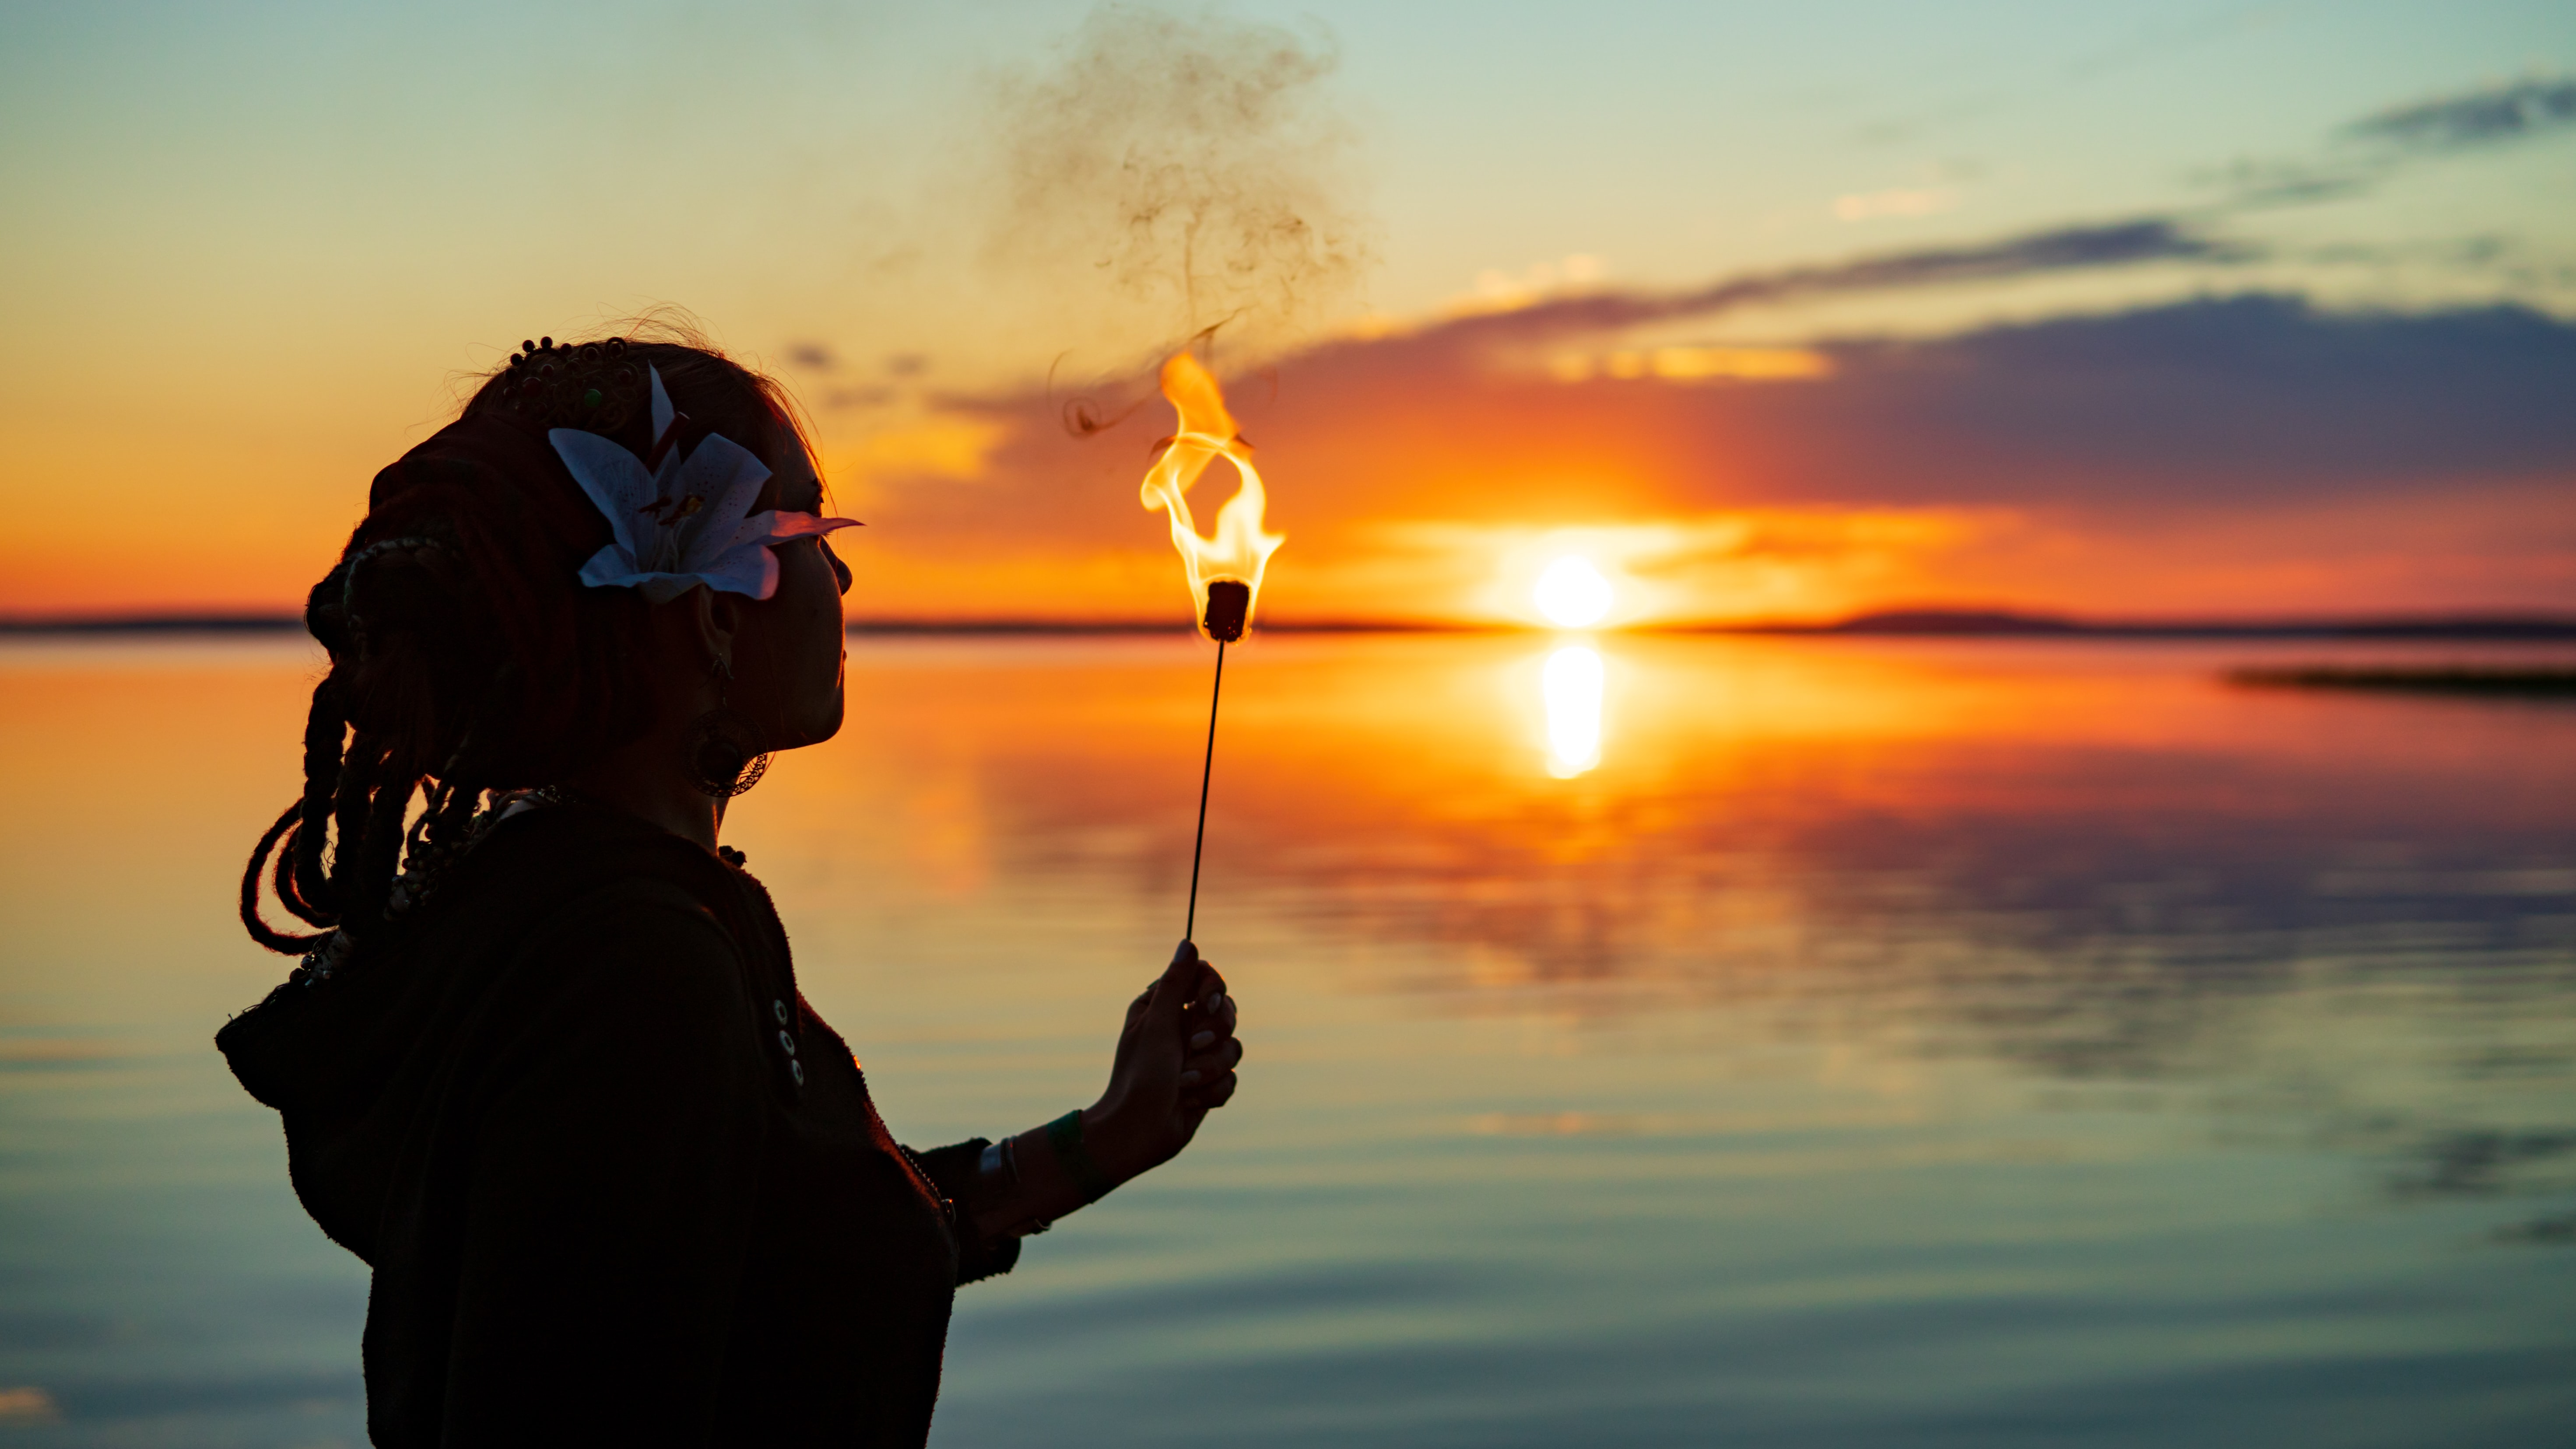 woman holding torch near body of water